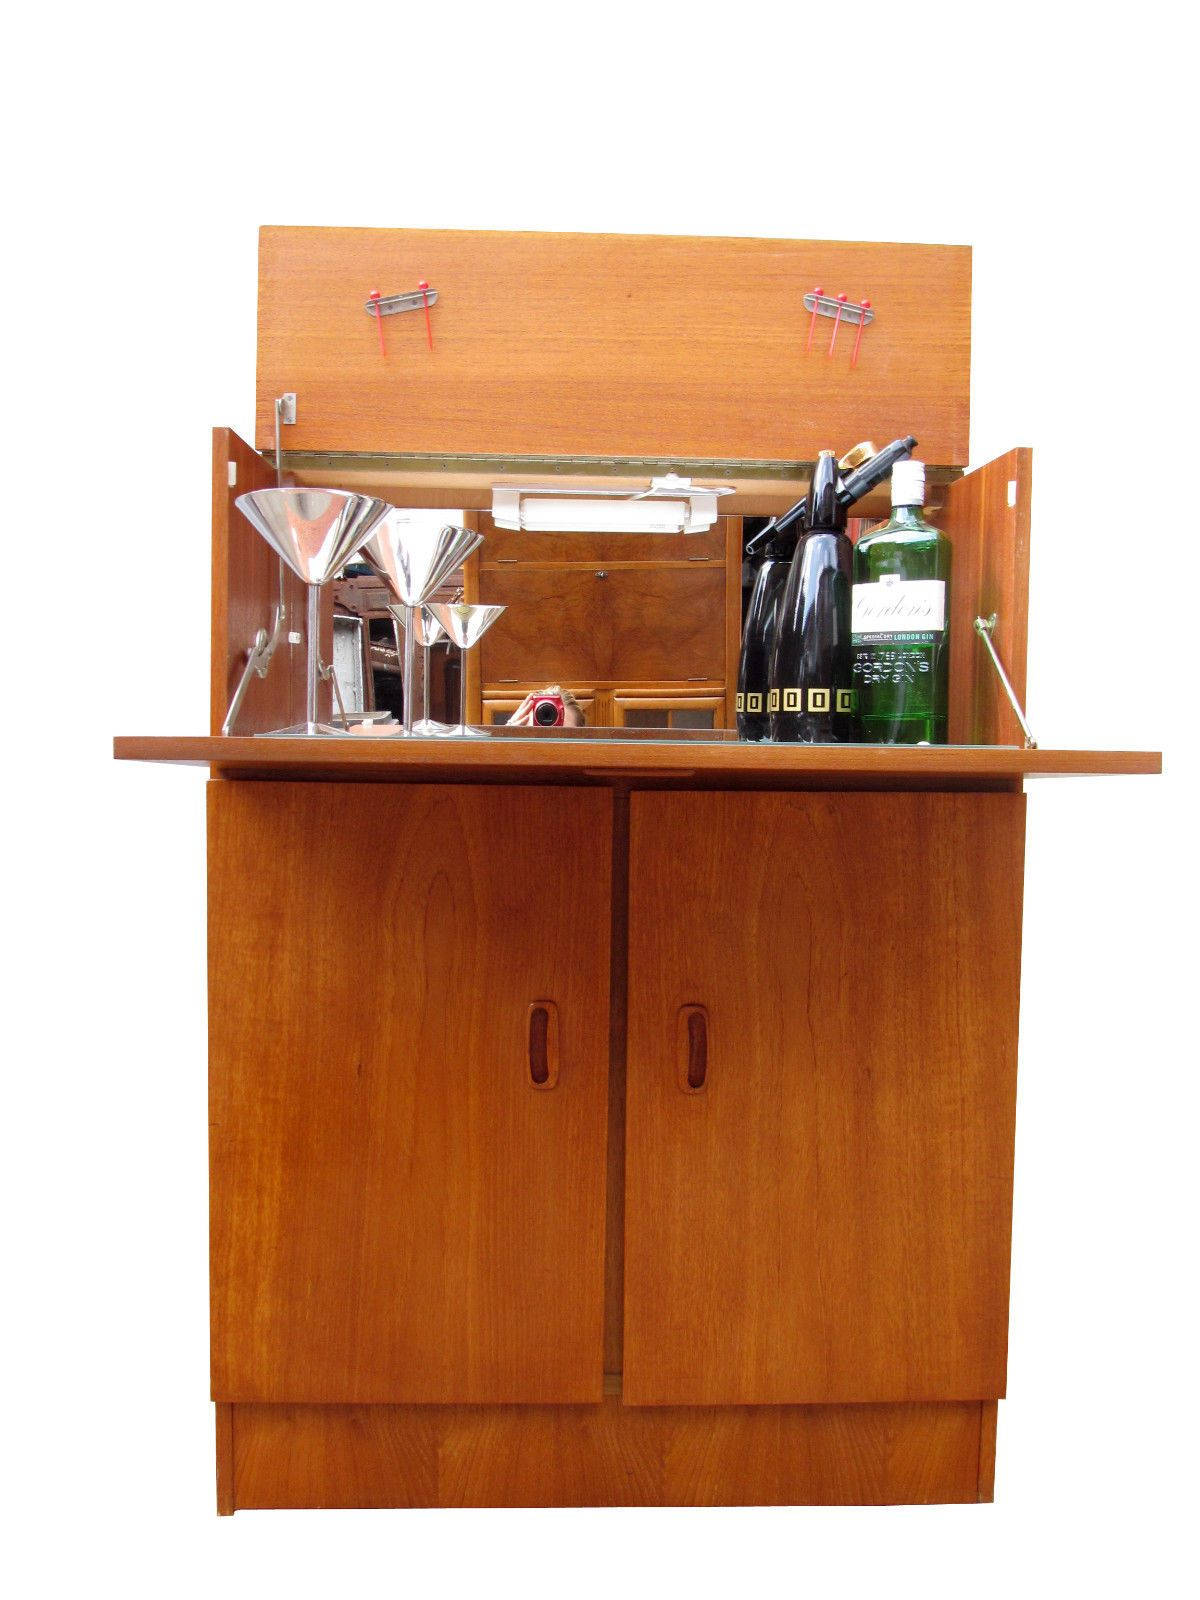 Lovely solid Wood Bar Cabinet